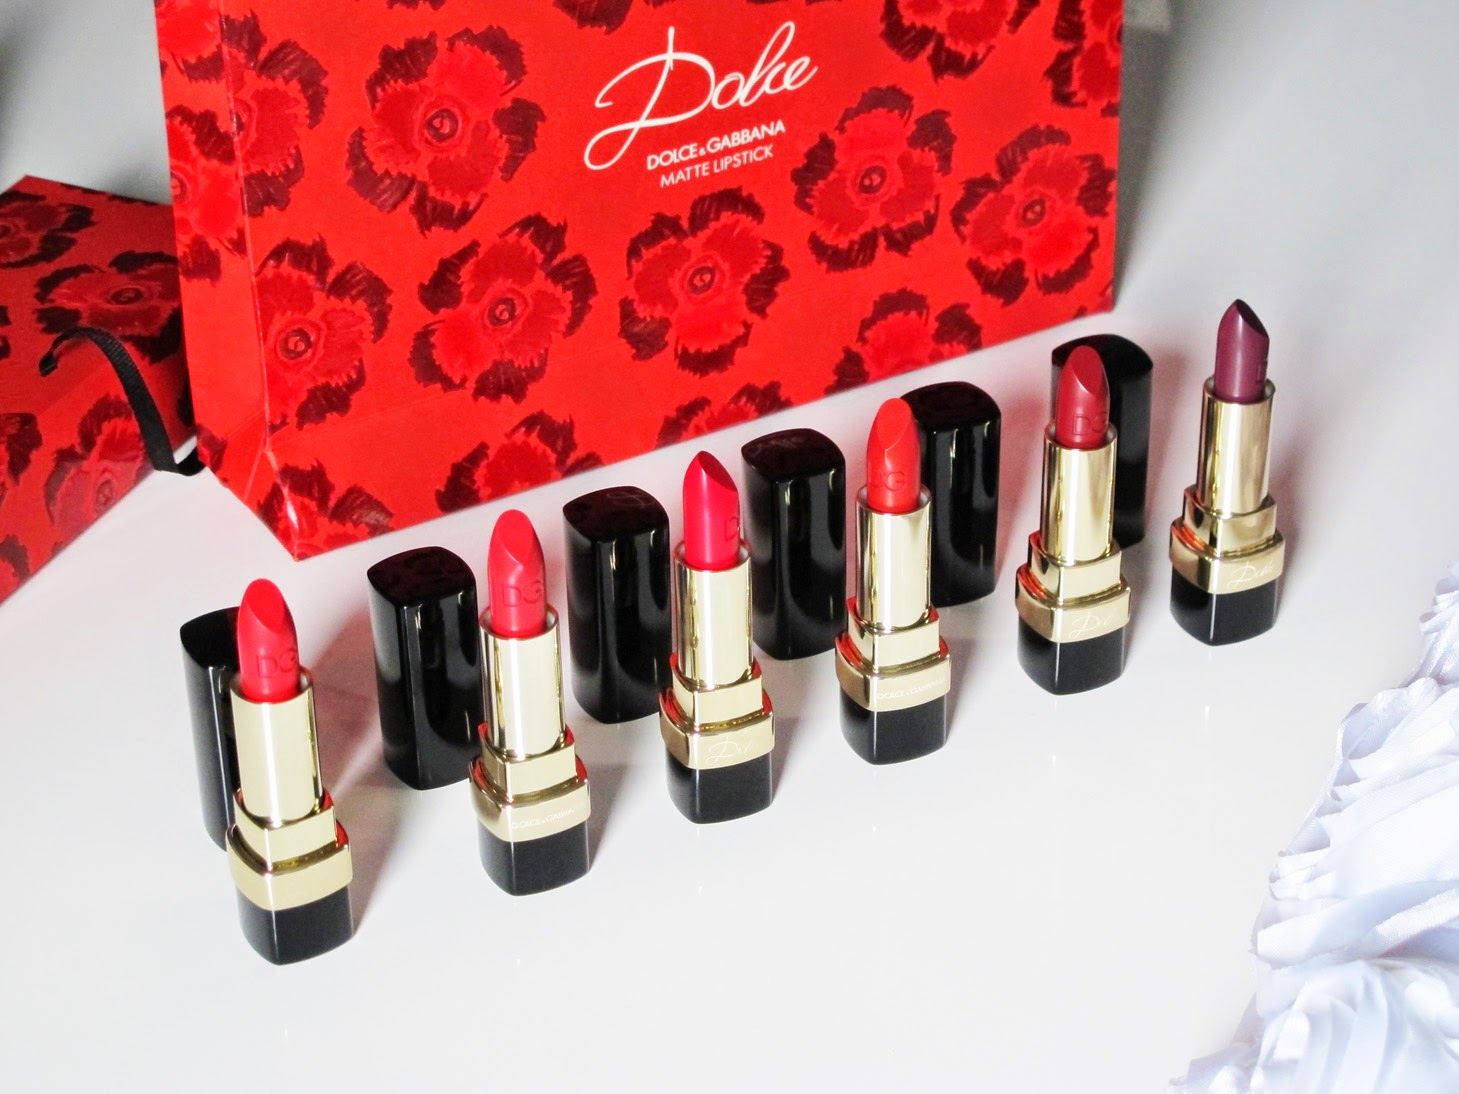 Dolce&Gabbana Make Up Dolce Lipstick Matte